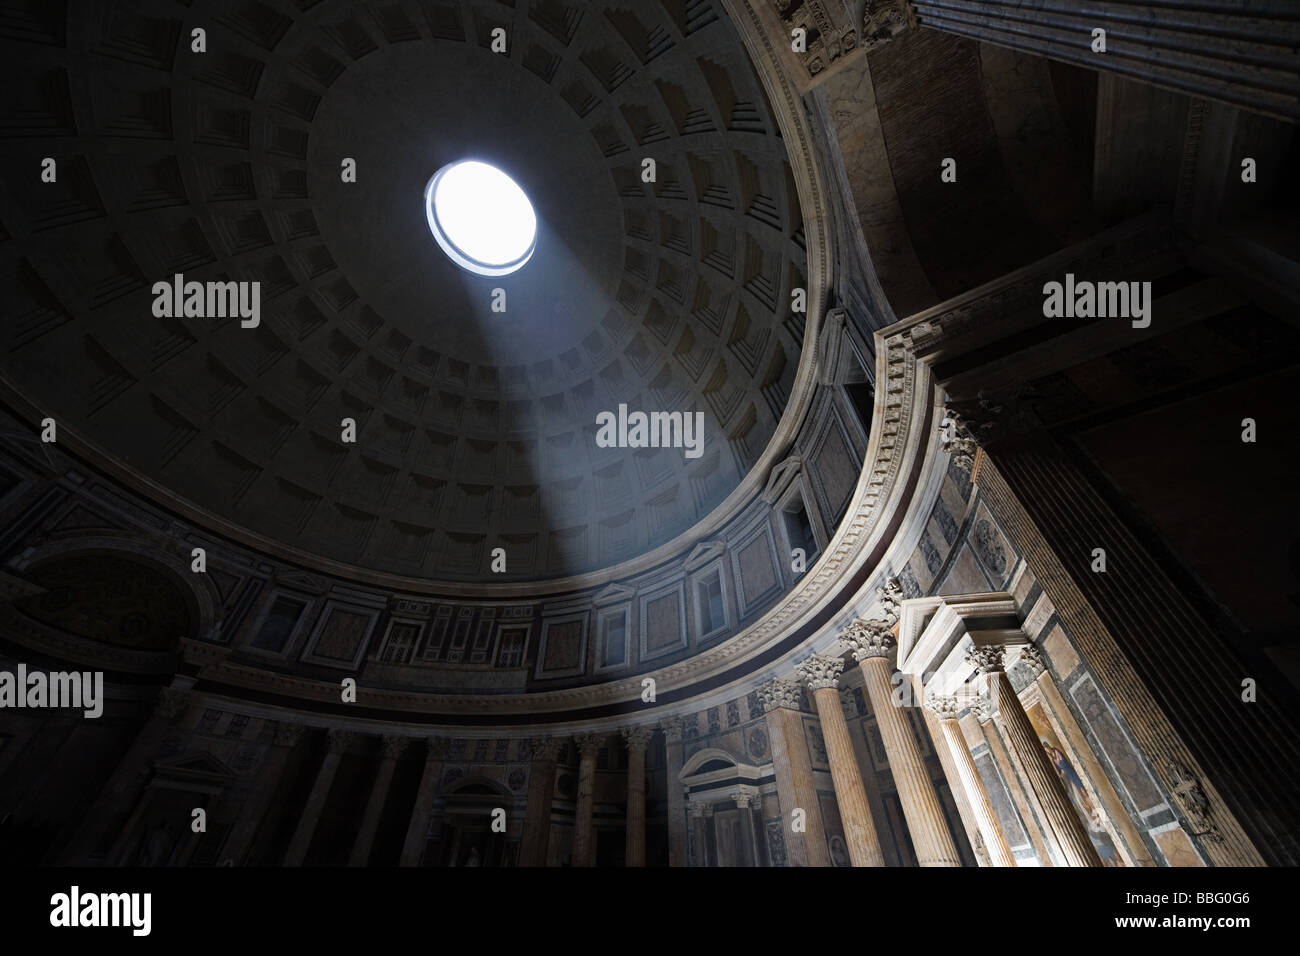 Pantheon Rom Stockbild